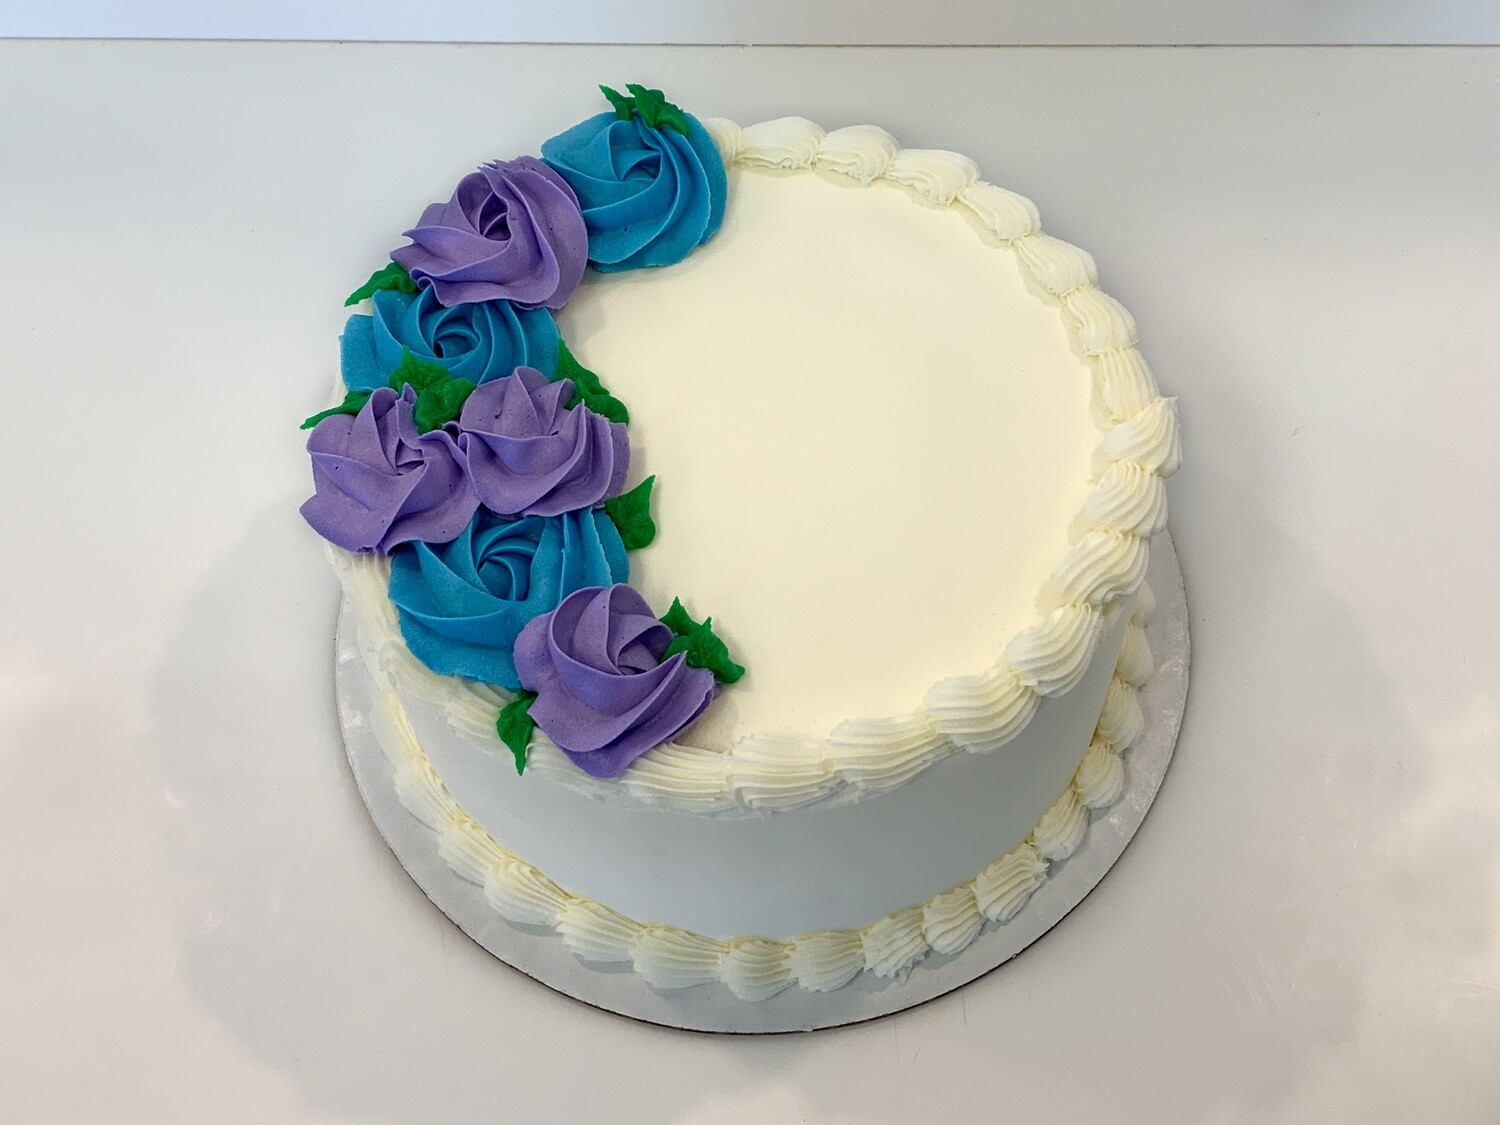 Rosette Spray Decorated Cake